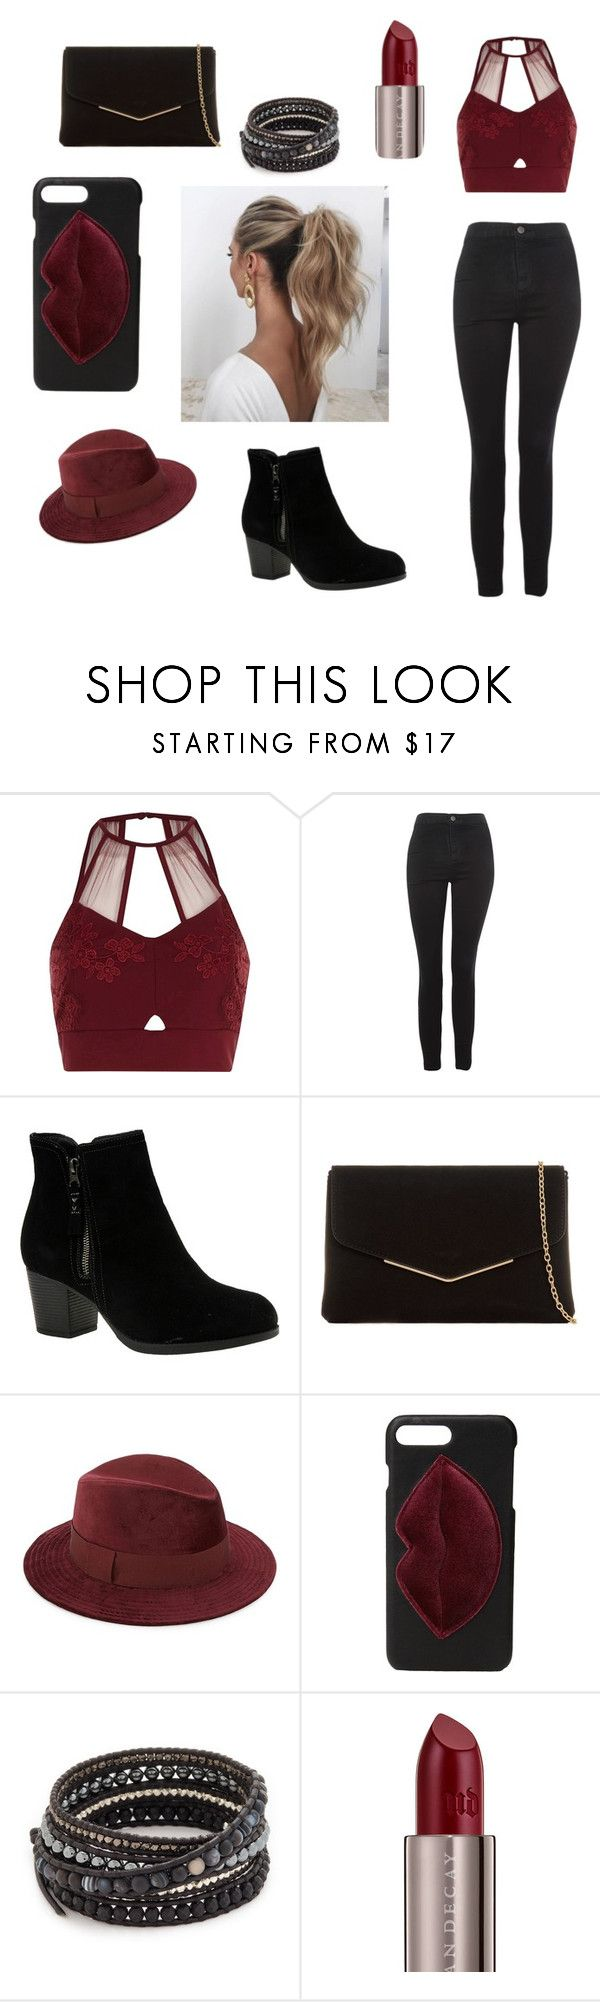 """Soirée"" by louncresaux on Polyvore featuring mode, River Island, Topshop, Skechers, KoKo Couture, Saks Fifth Avenue, Kendall + Kylie, Love Couture, Chan Luu et Urban Decay"